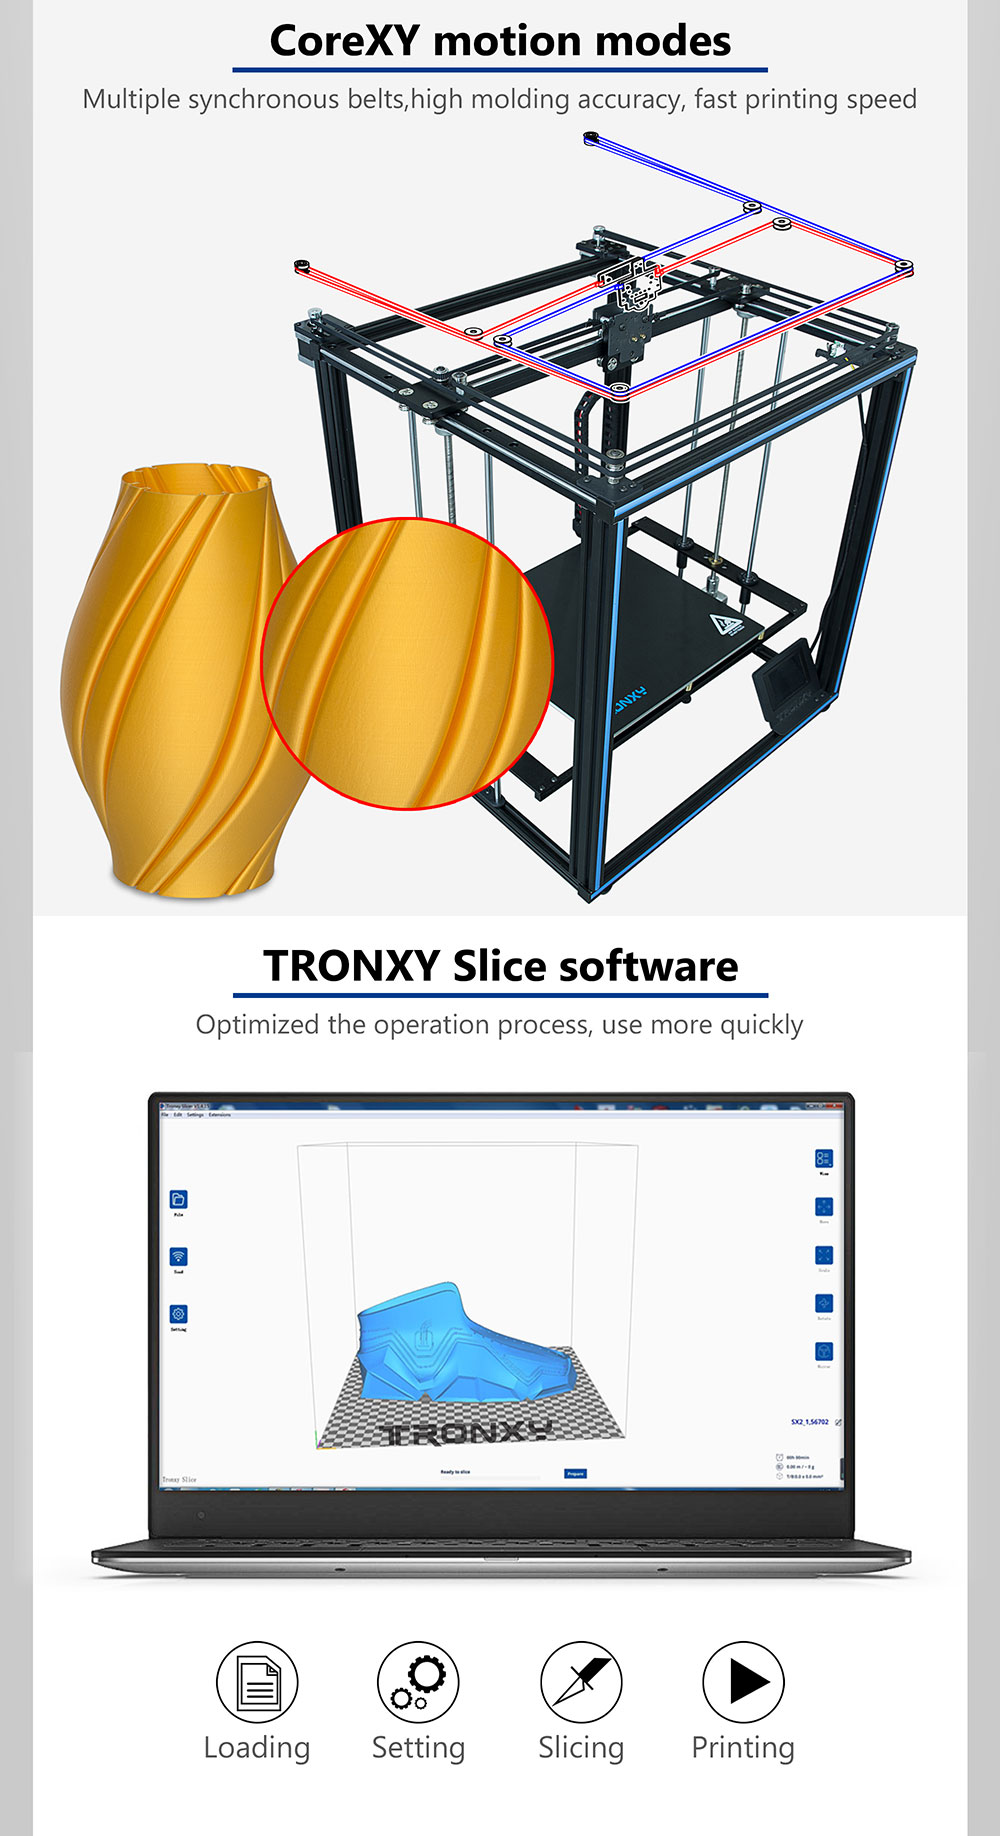 TRONXY X5SA-400 PRO DIY 3D Printer Kit 400*400*400mm Core XY with Titan Extruder/Auto Leveling/Filament Dectect/Power Resume